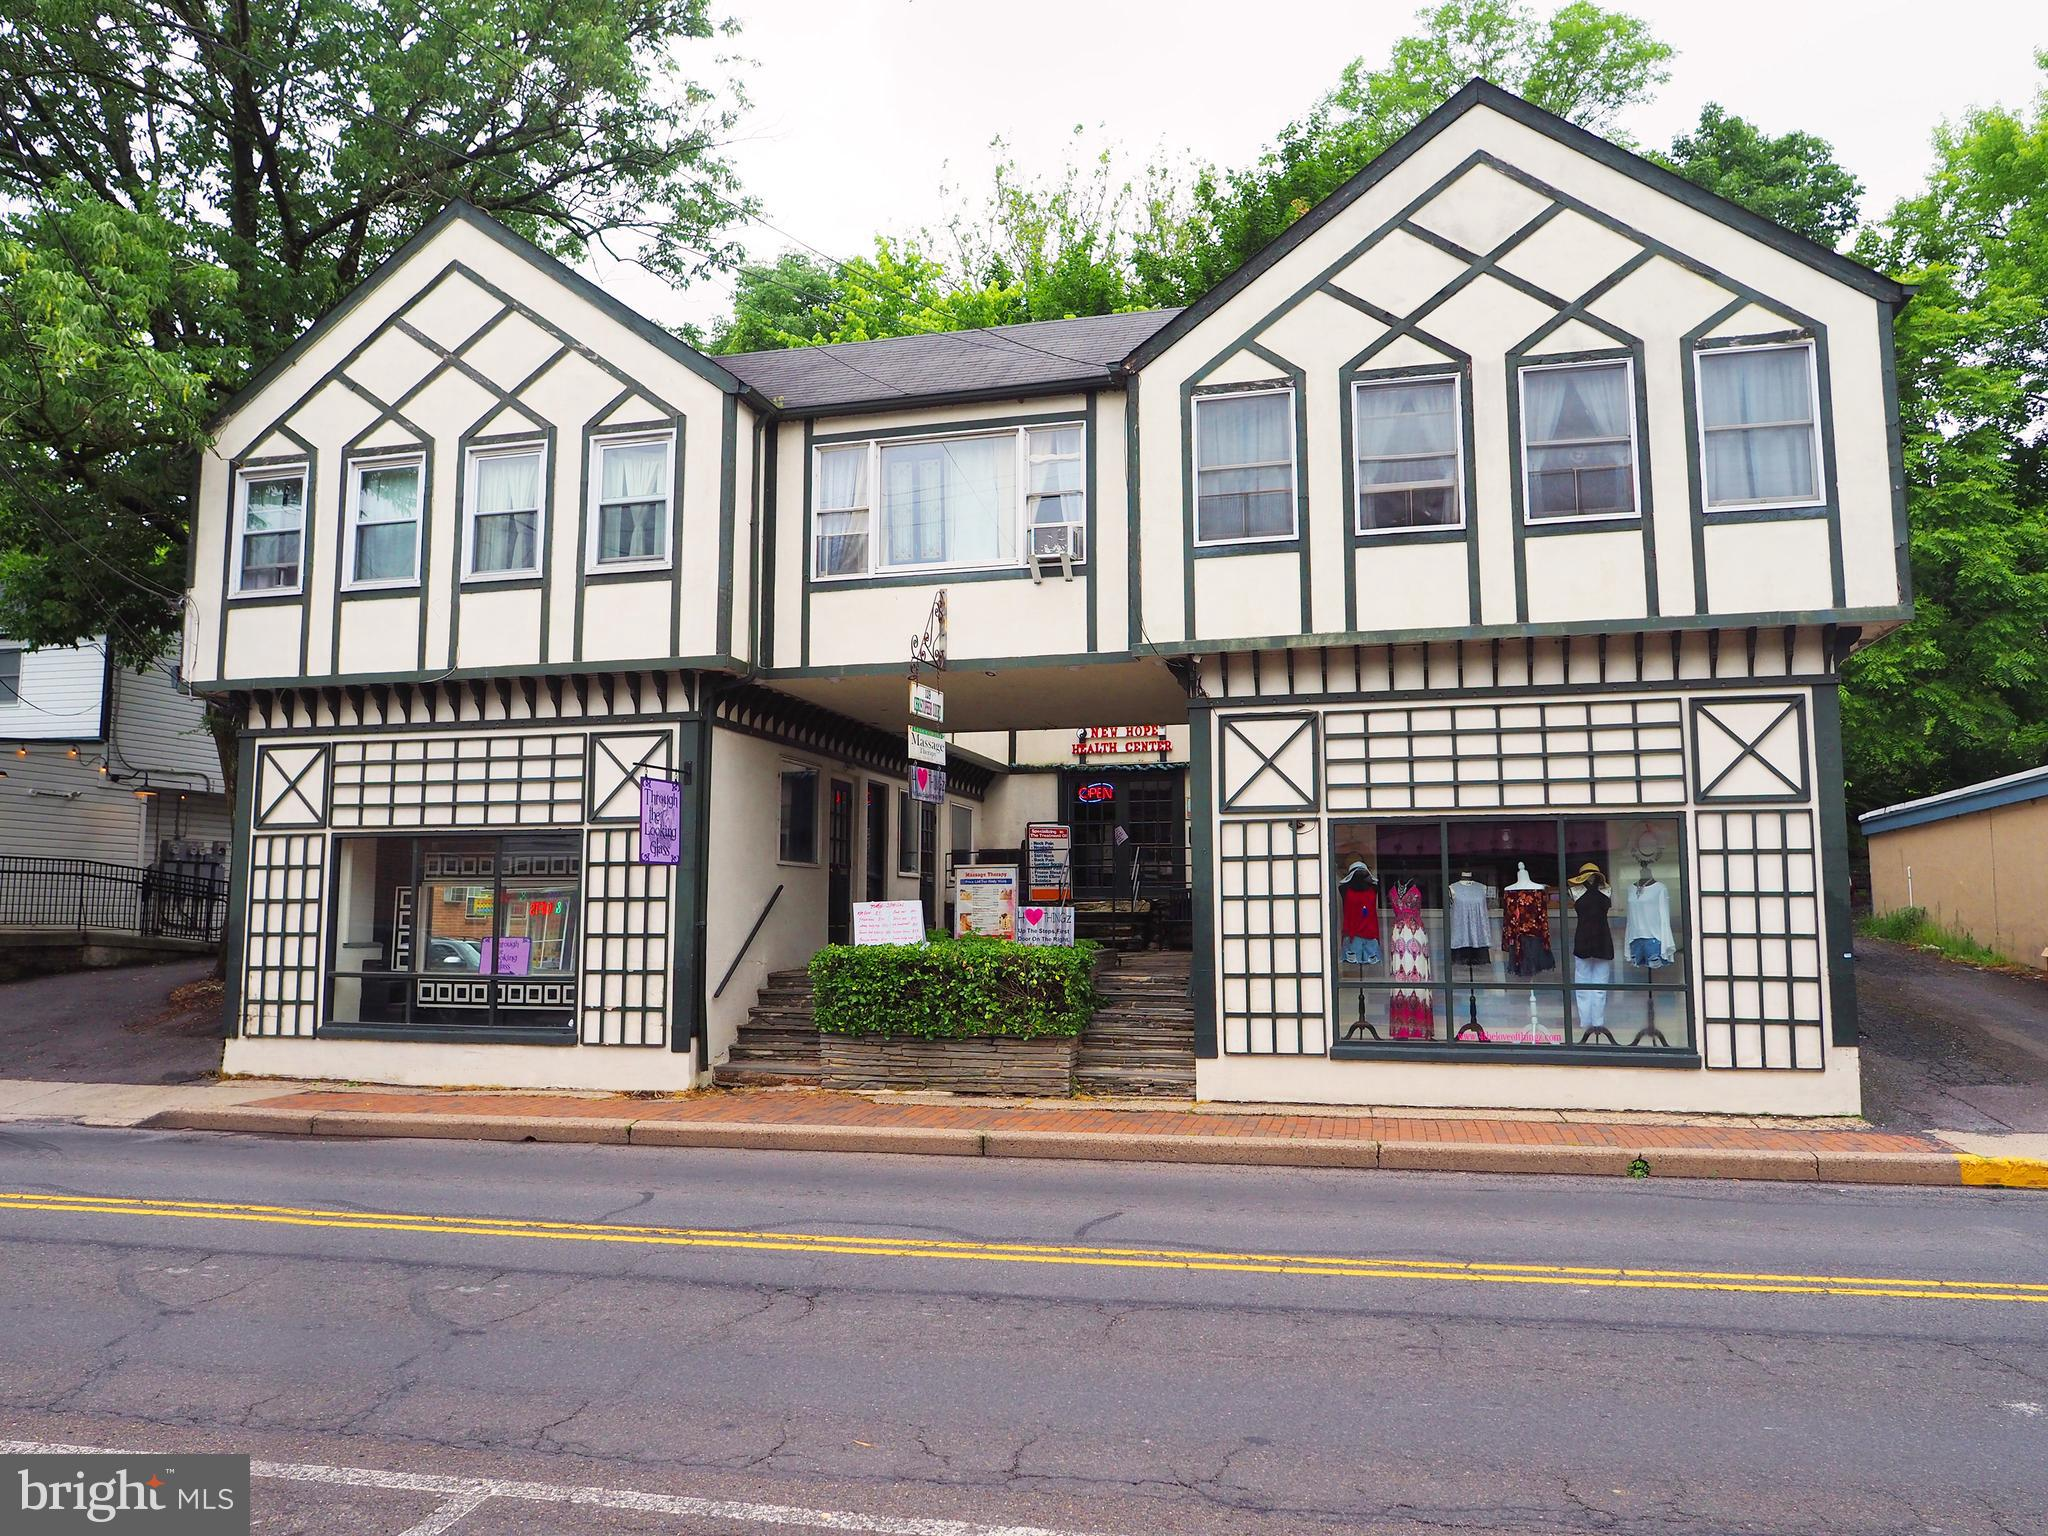 129 S MAIN STREET, NEW HOPE, PA 18938